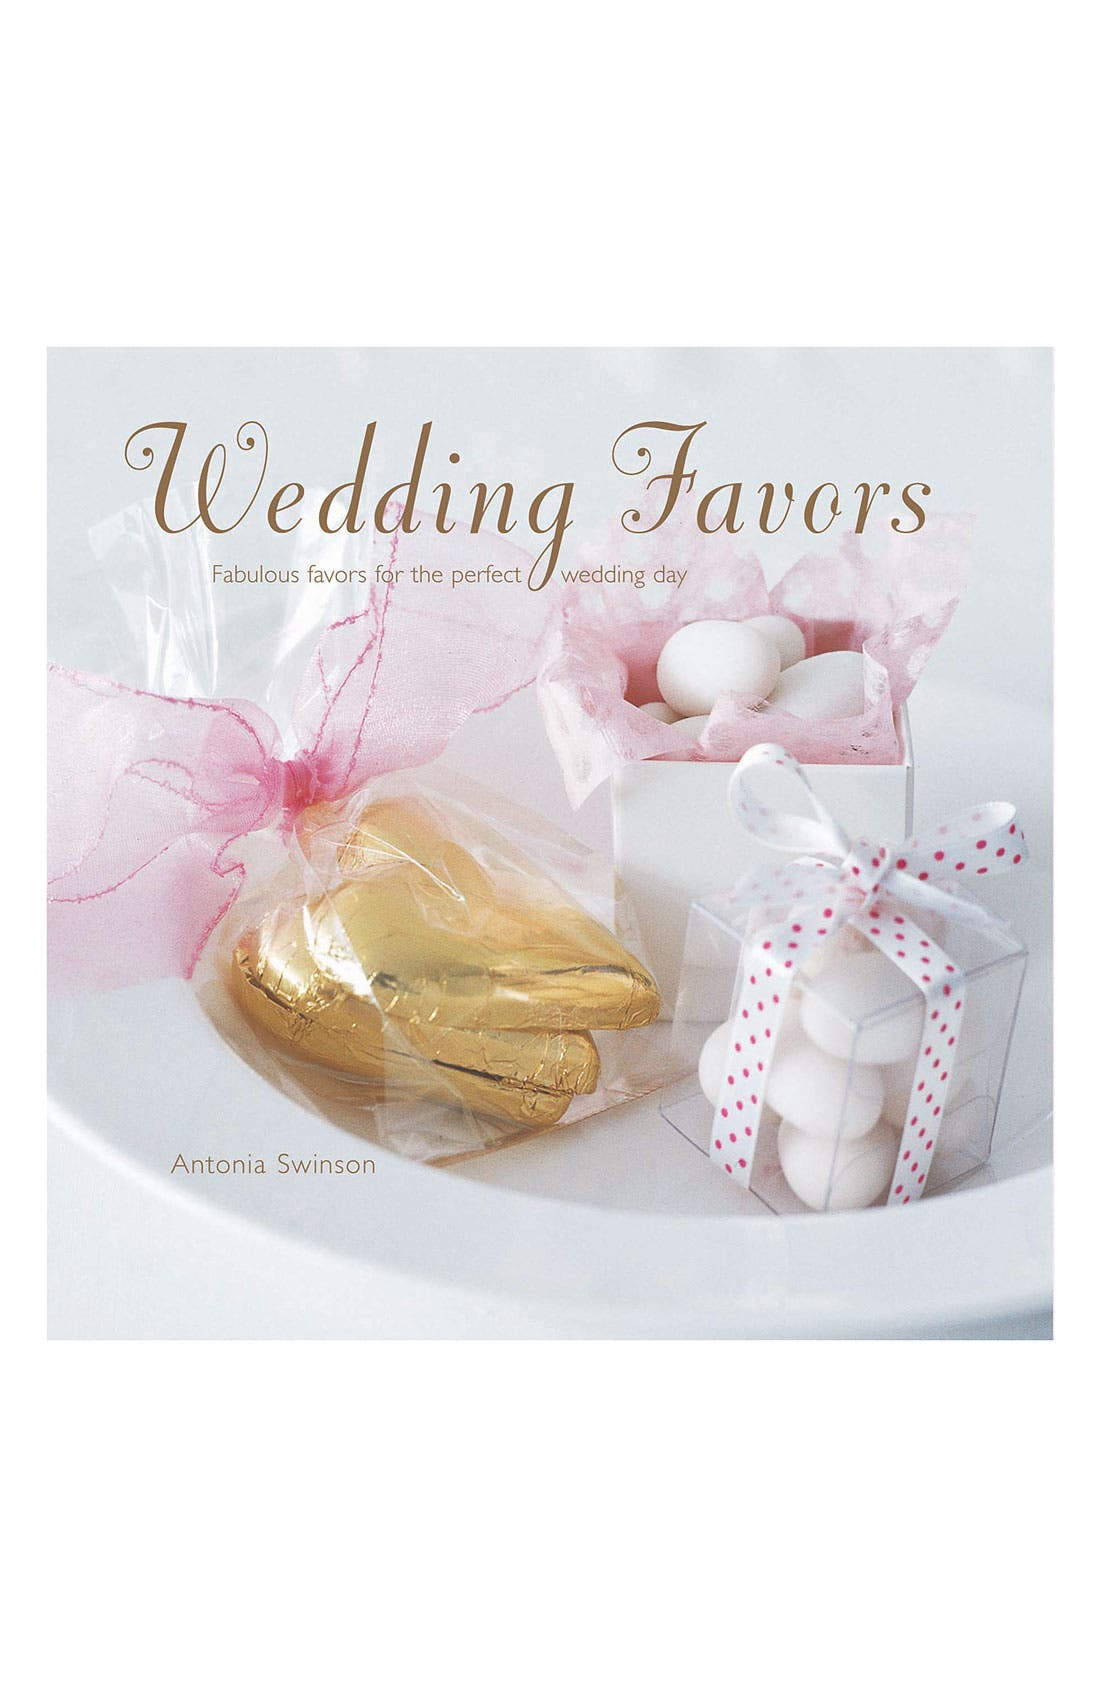 Alternate Image 1 Selected - 'Wedding Favors' Book